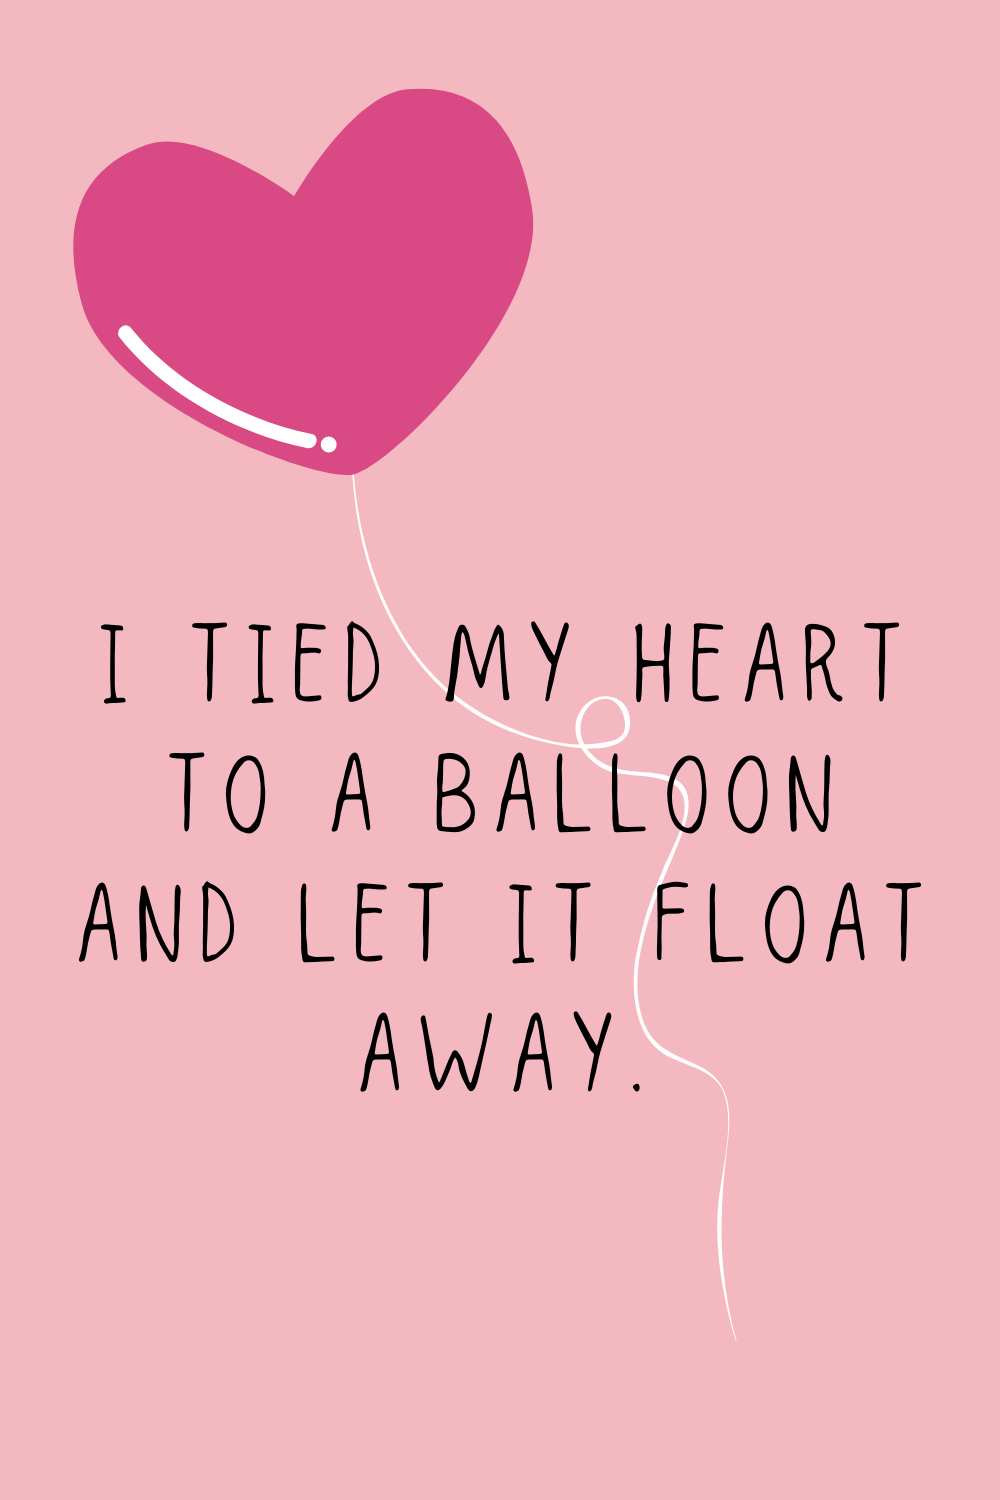 Quotes about balloons